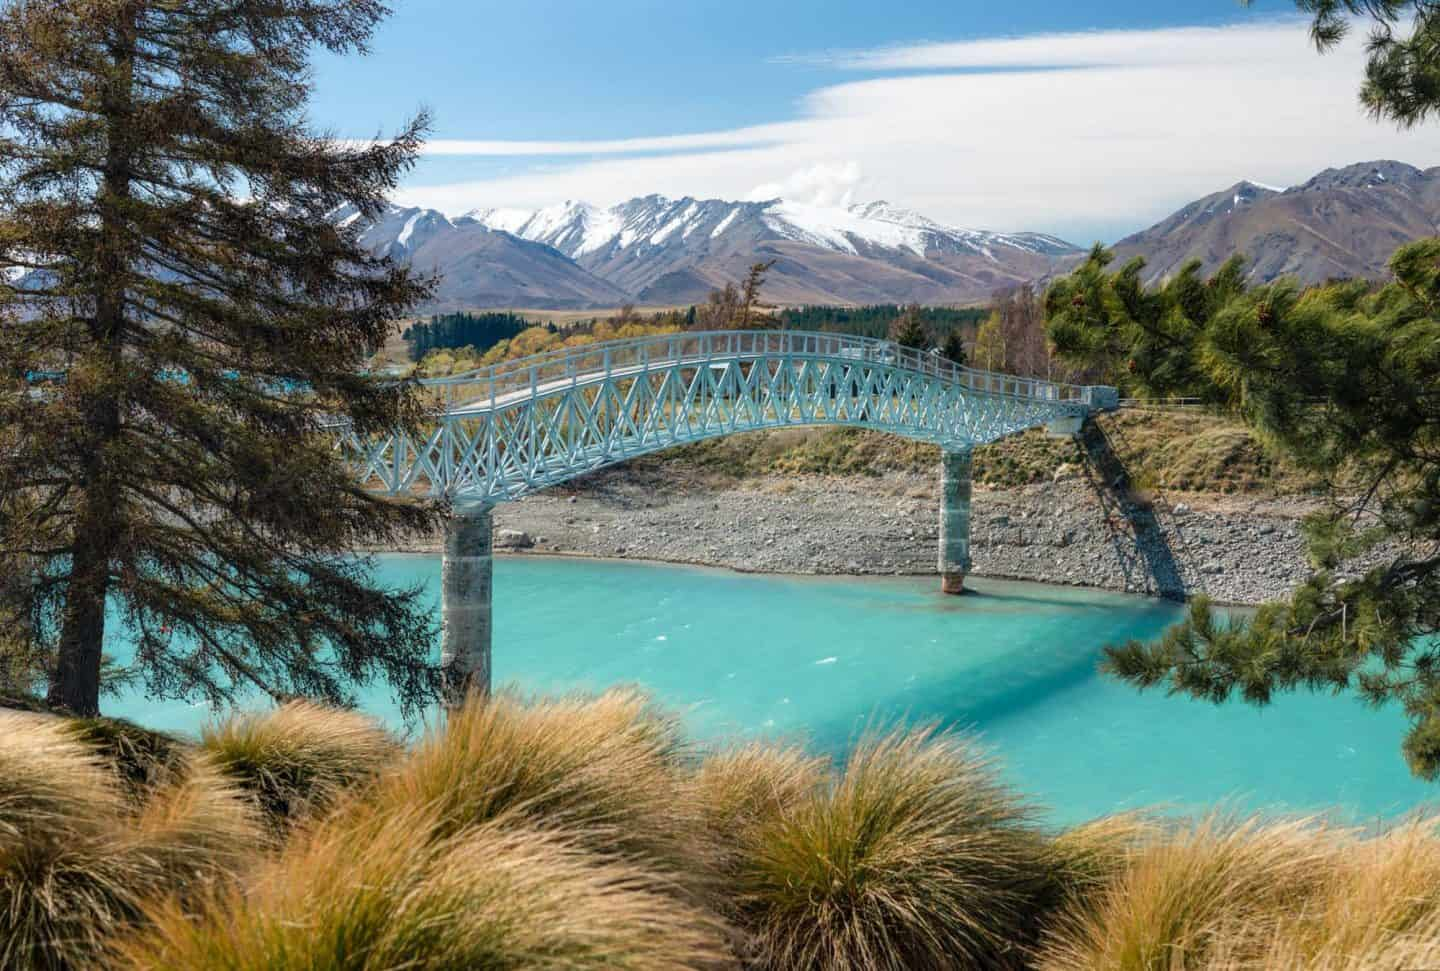 Begin your week in New Zealand by going straight to Lake Tekapo!